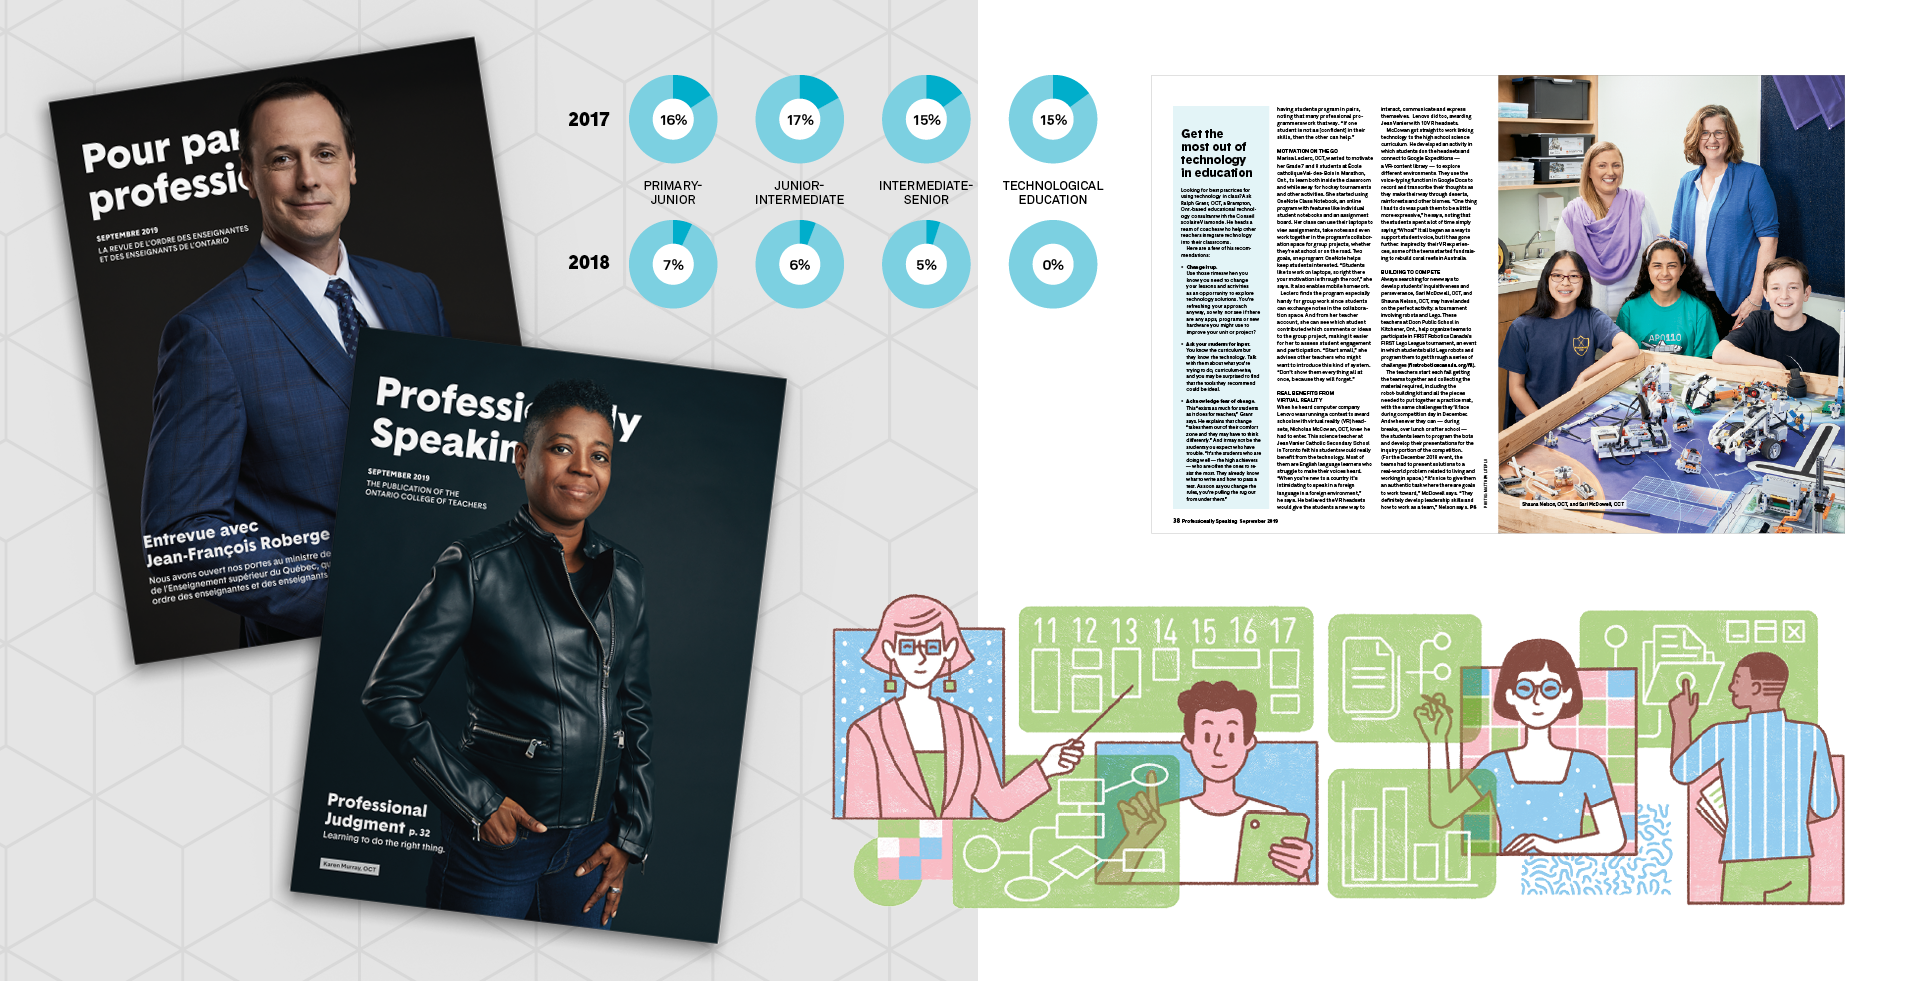 OCT Professionally Speaking magazine rebranded design layouts